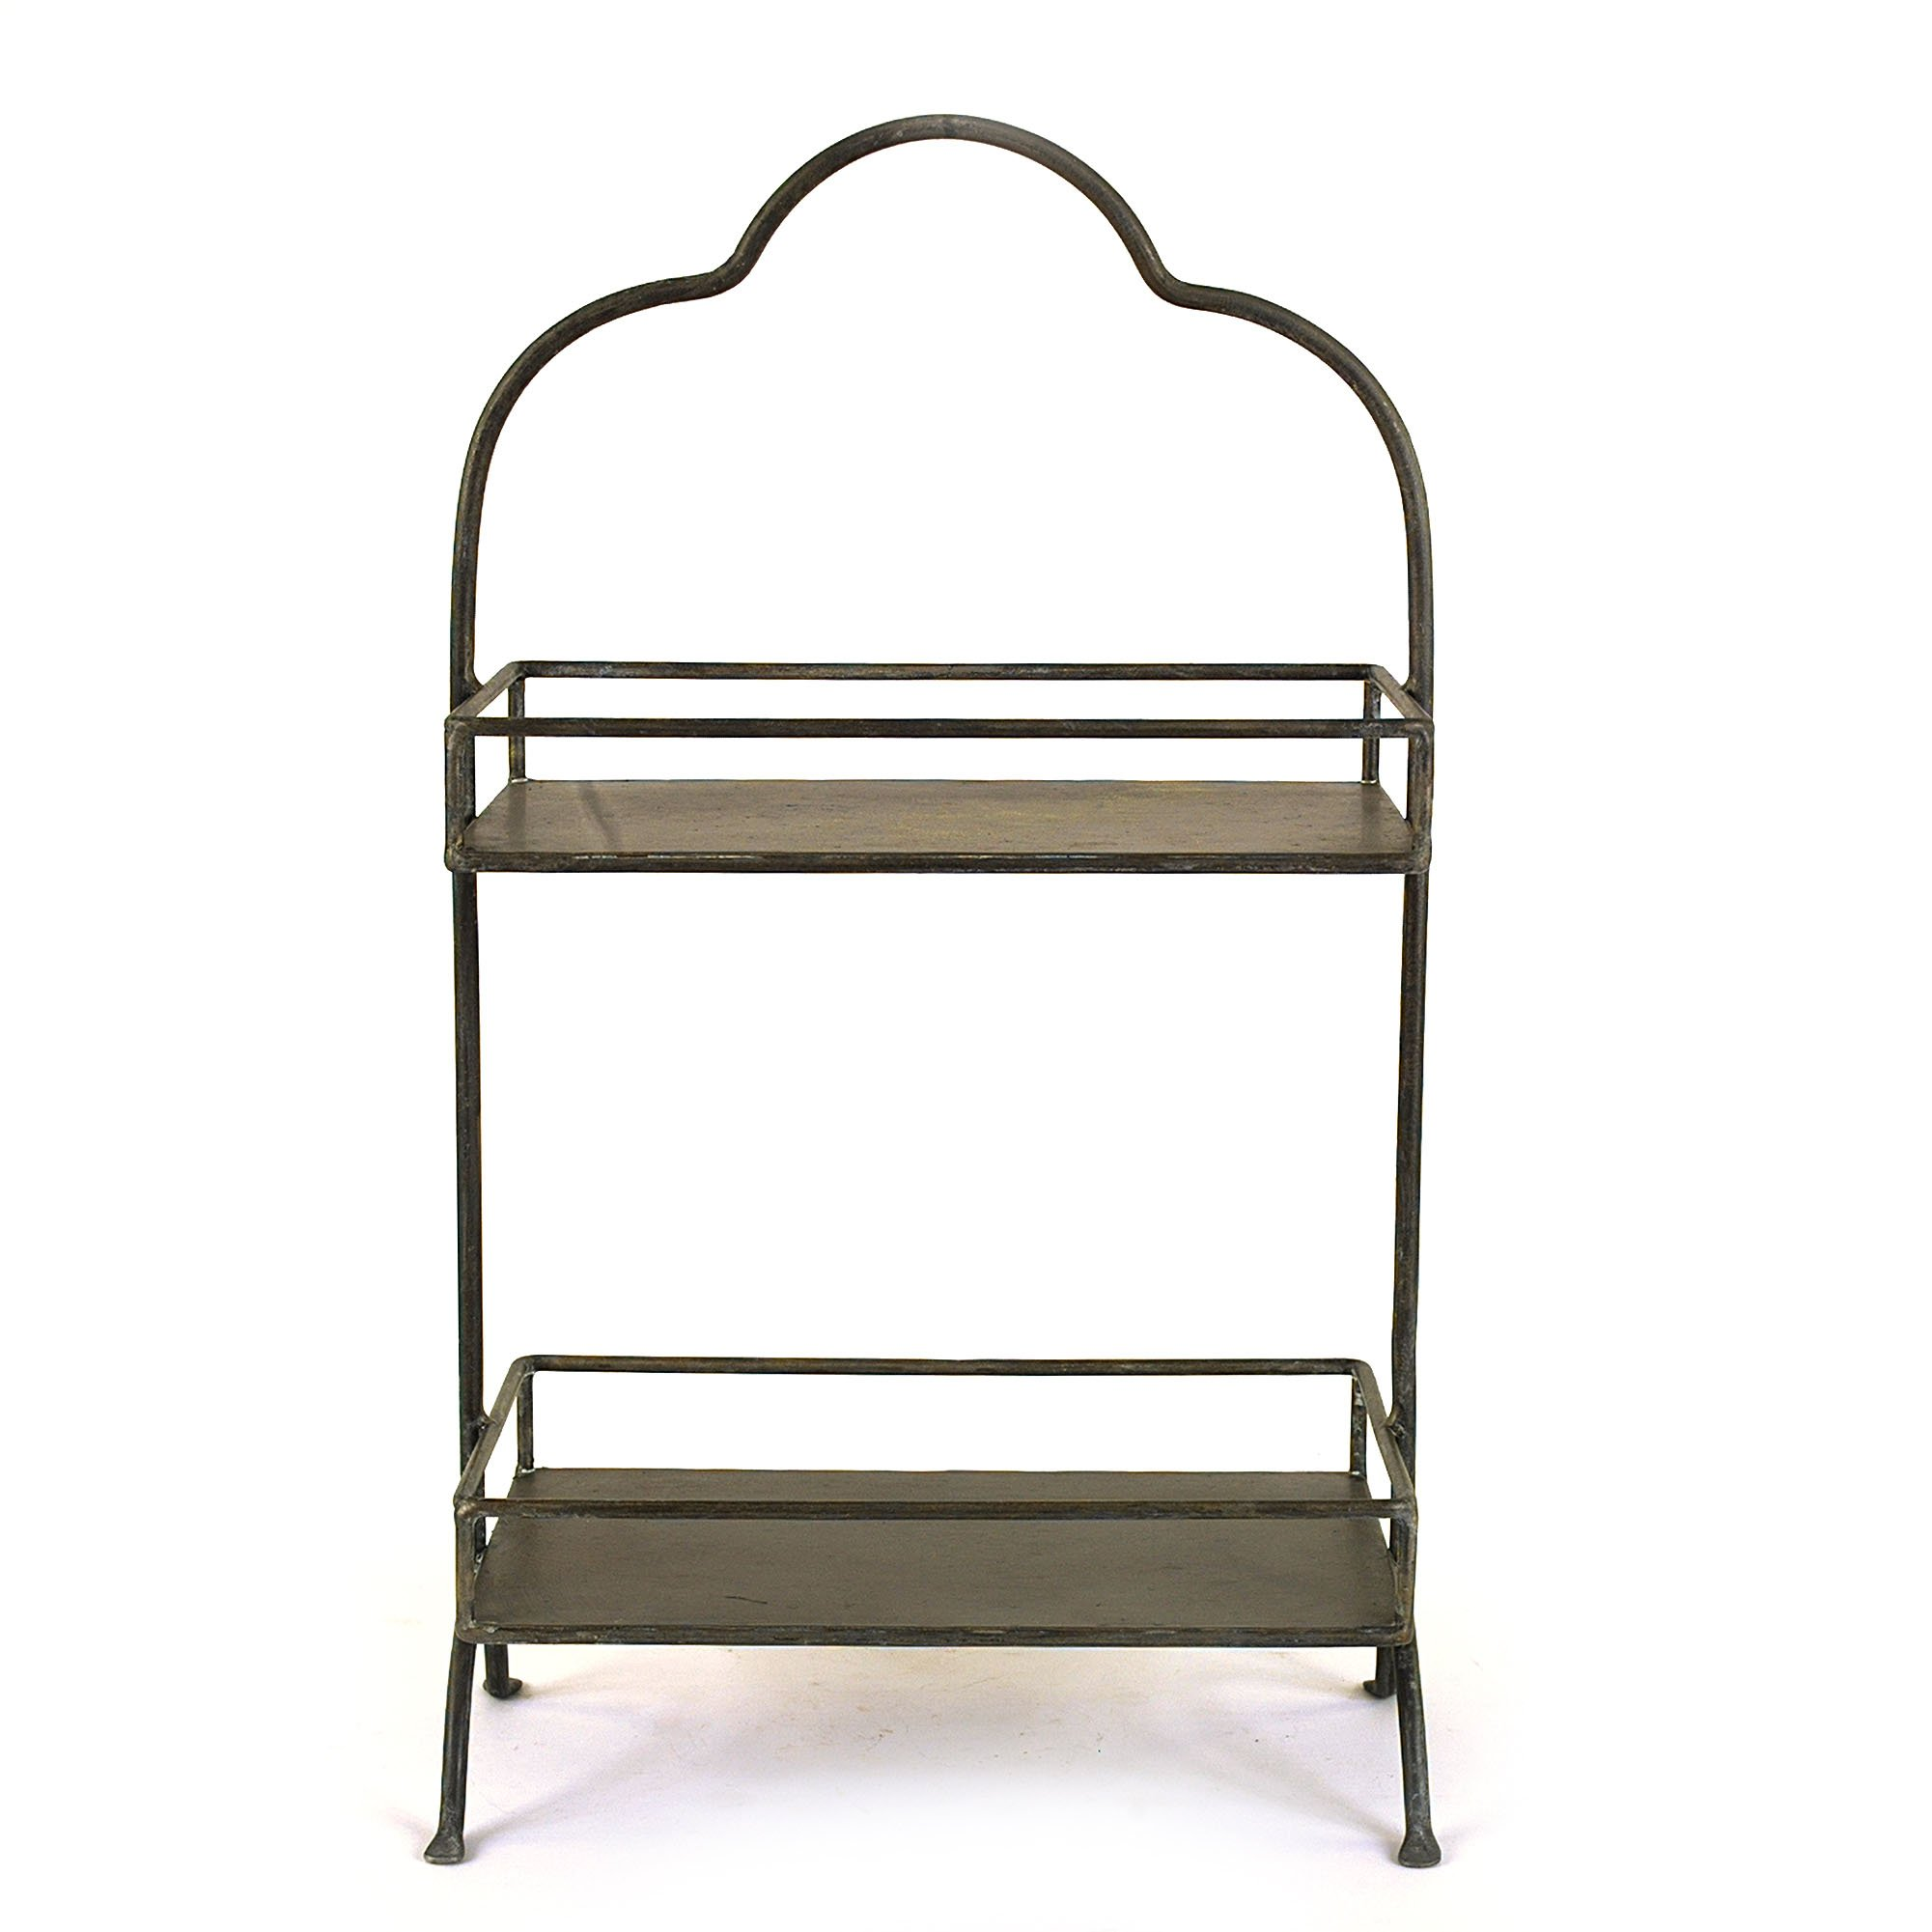 """Creative Co-Op Decorative Metal Two Tier Tray with Handle, 10.6"""" L x 5.9"""" W x 17.9"""" H"""